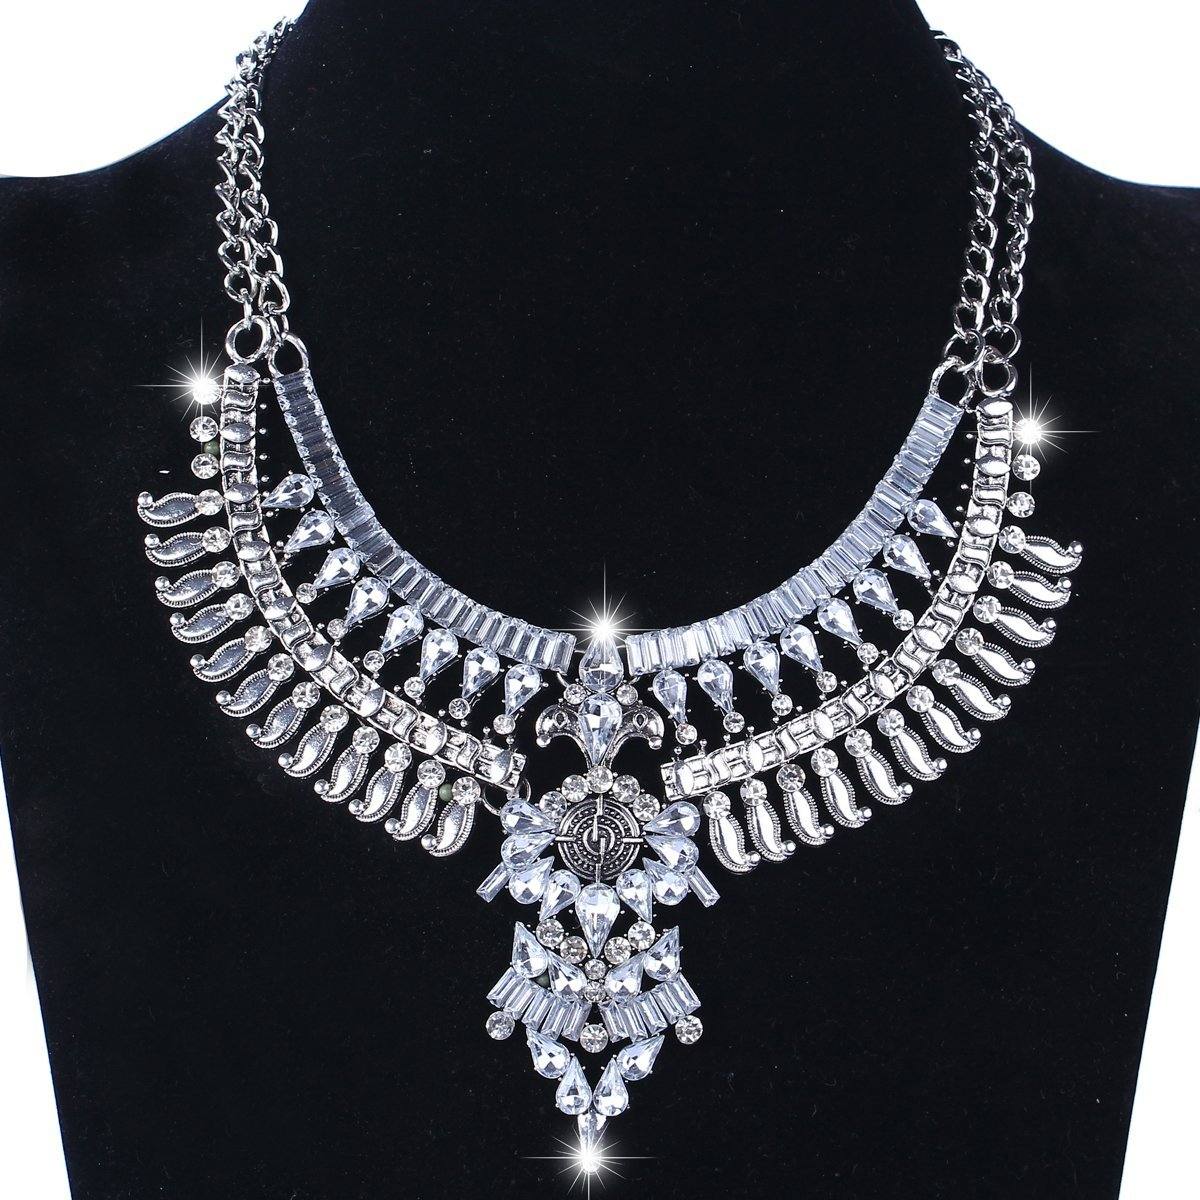 Santfe Vintage Silver Gold Long Boho Statement Necklace Trendy Bohemian Turkish for Women Accessories Jewelry (Silver-8)